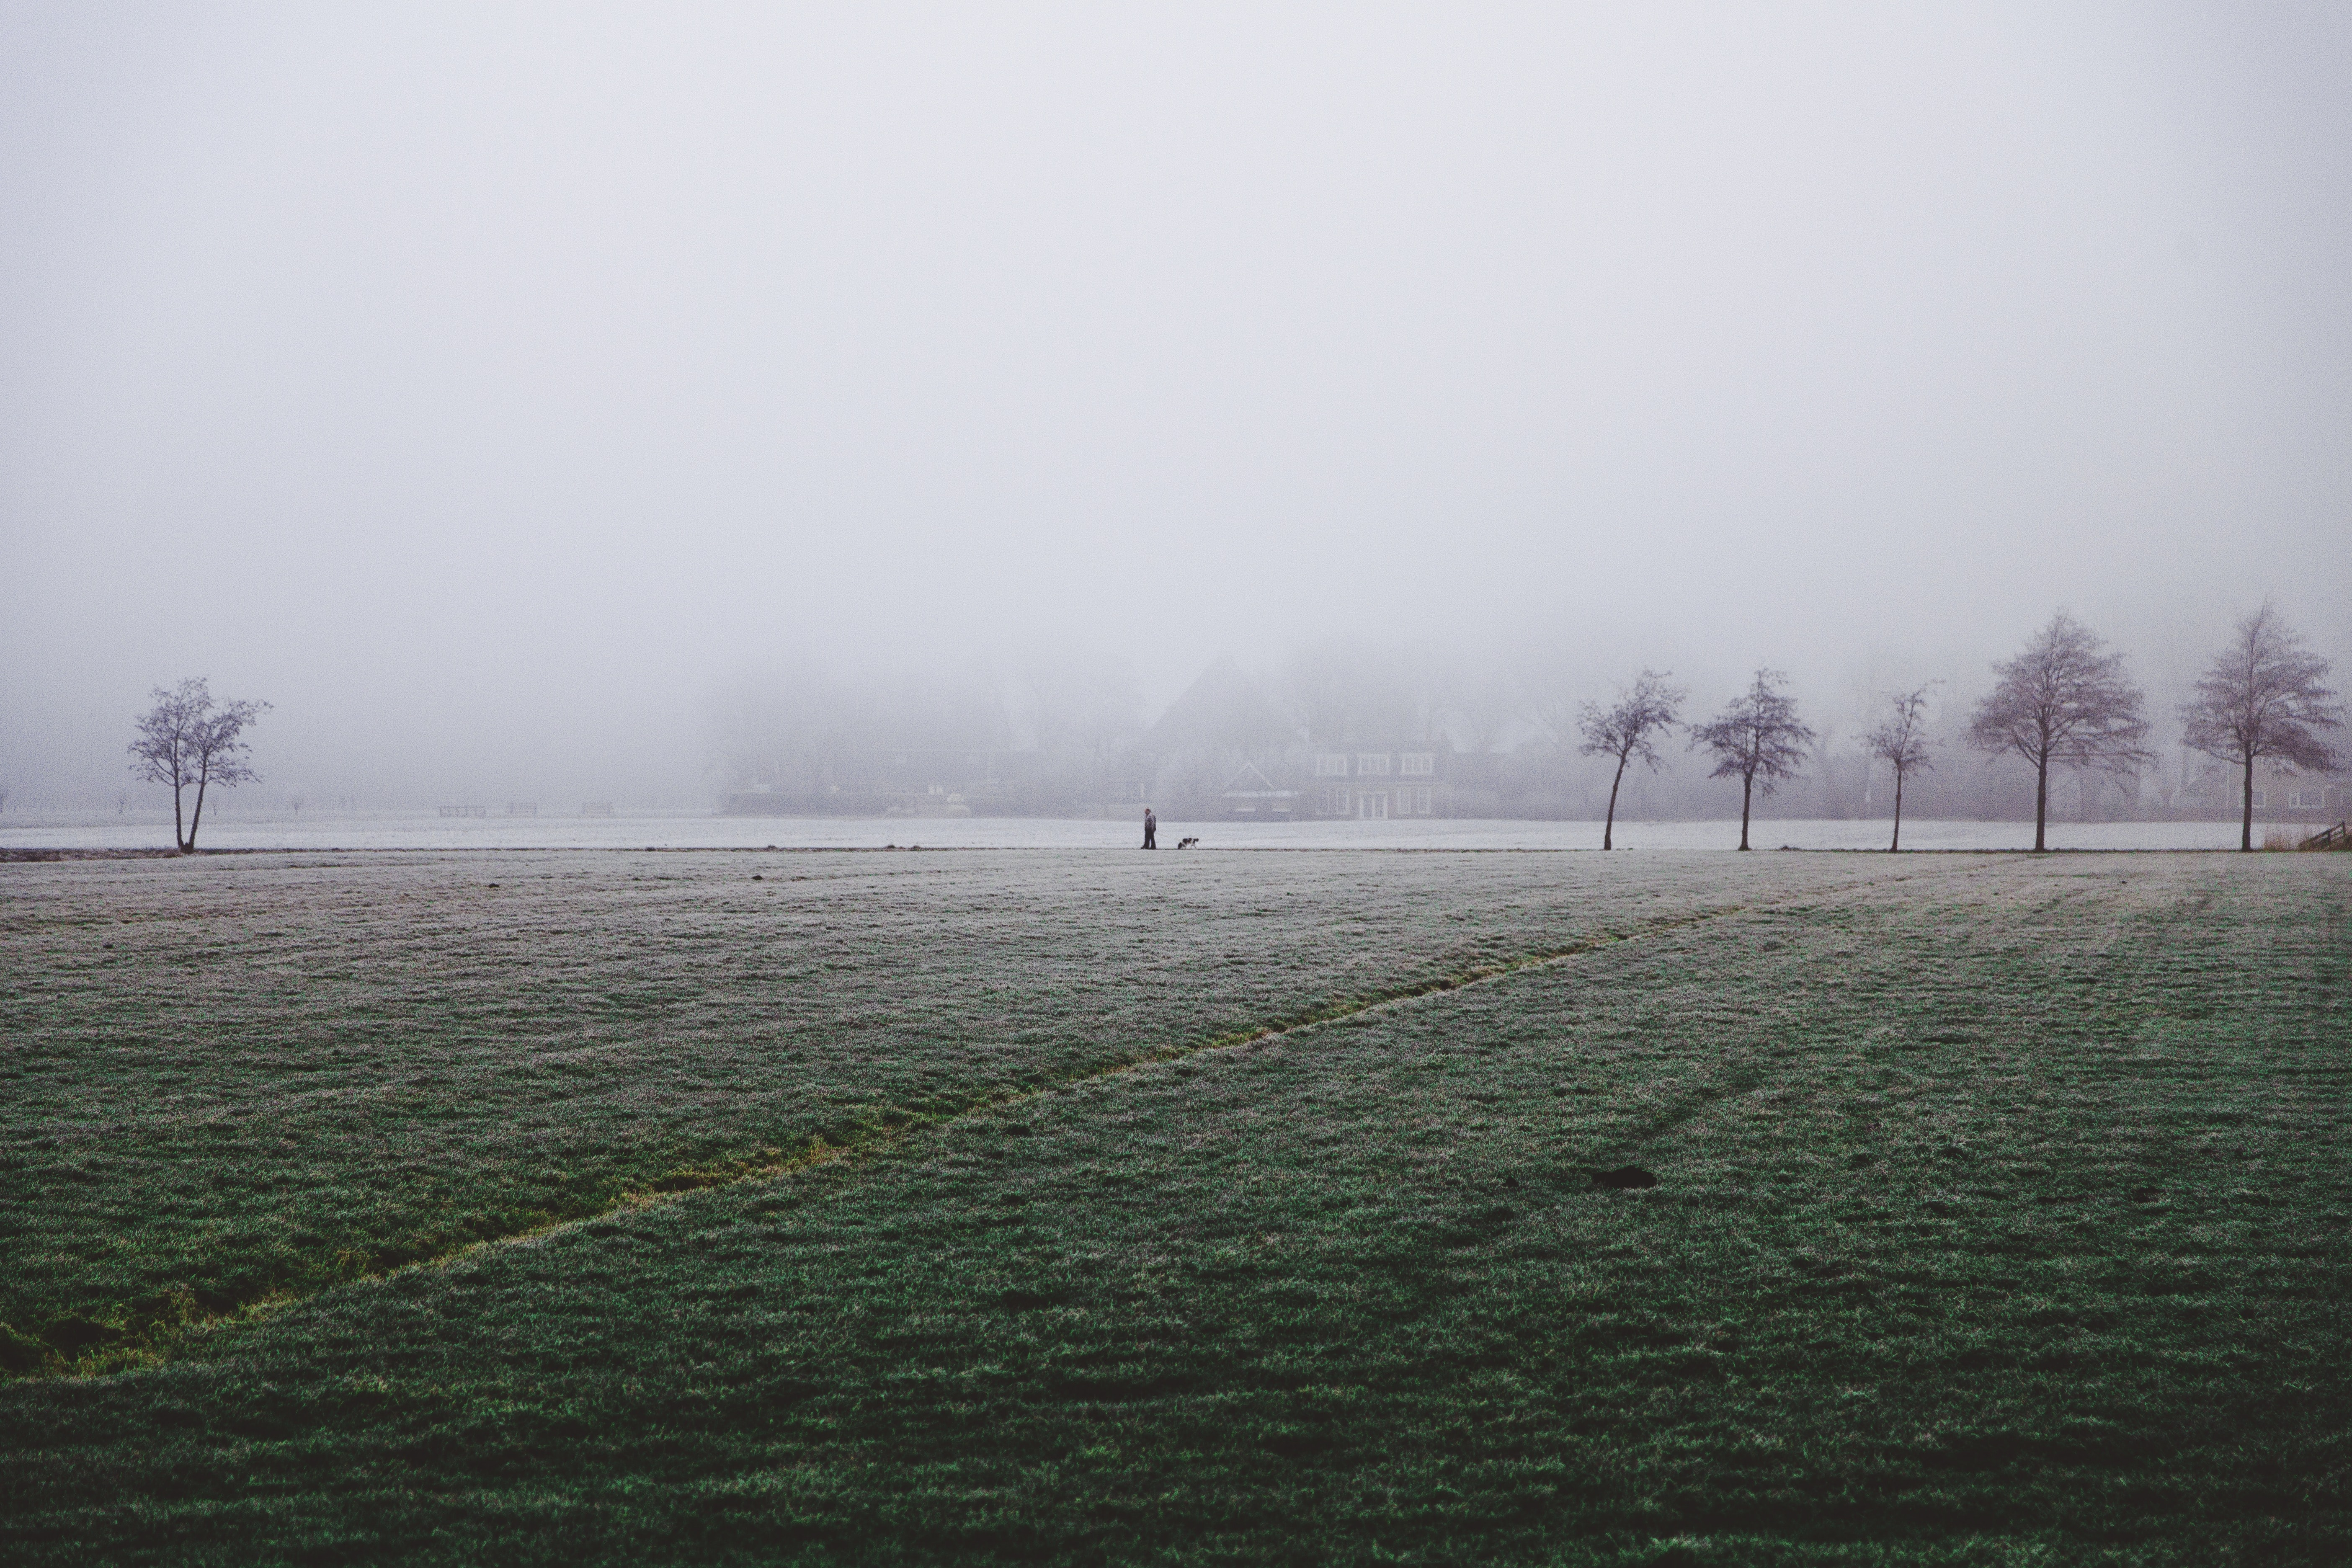 Mist covers a rural field and bare trees in Leeuwarden